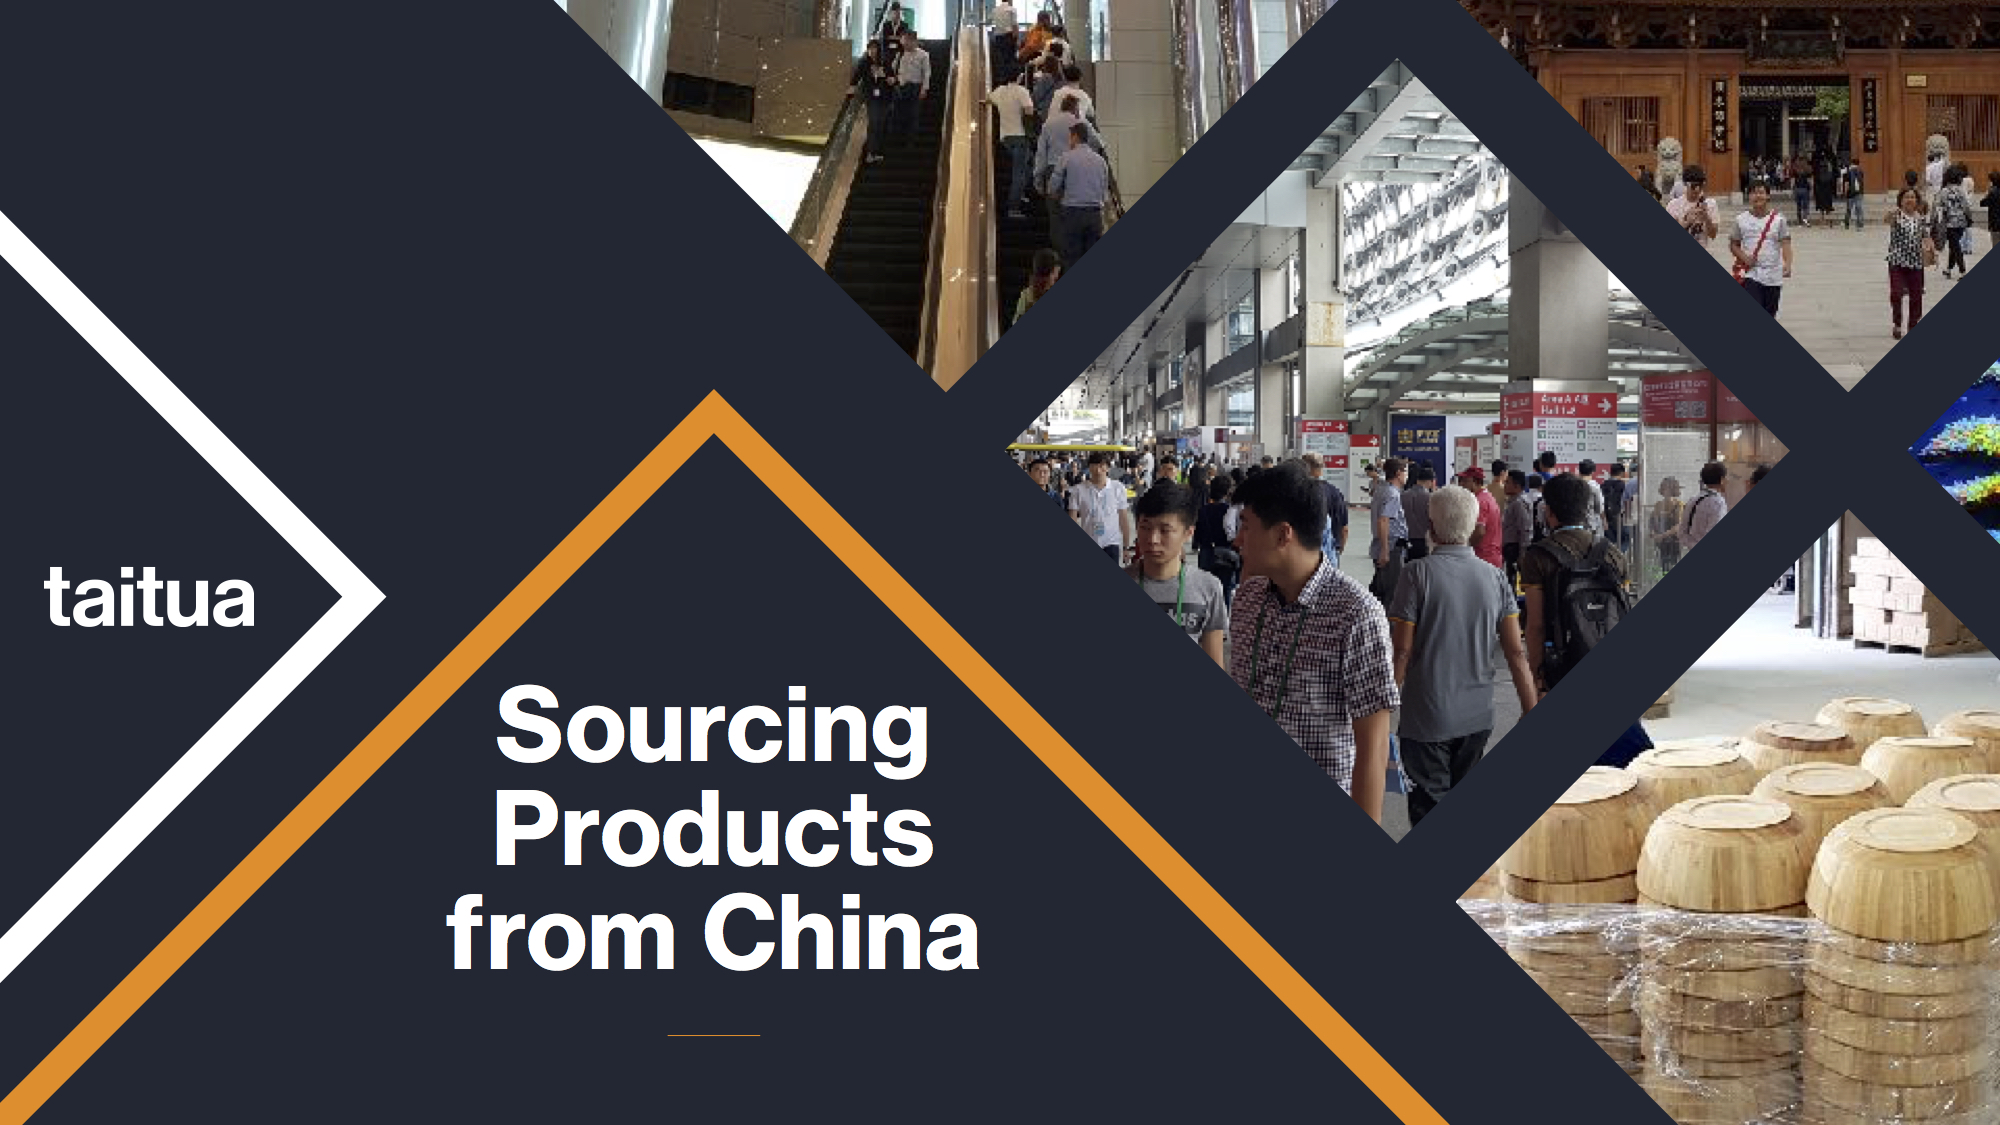 SourcingProductsFromChina_v3_low res.jpg